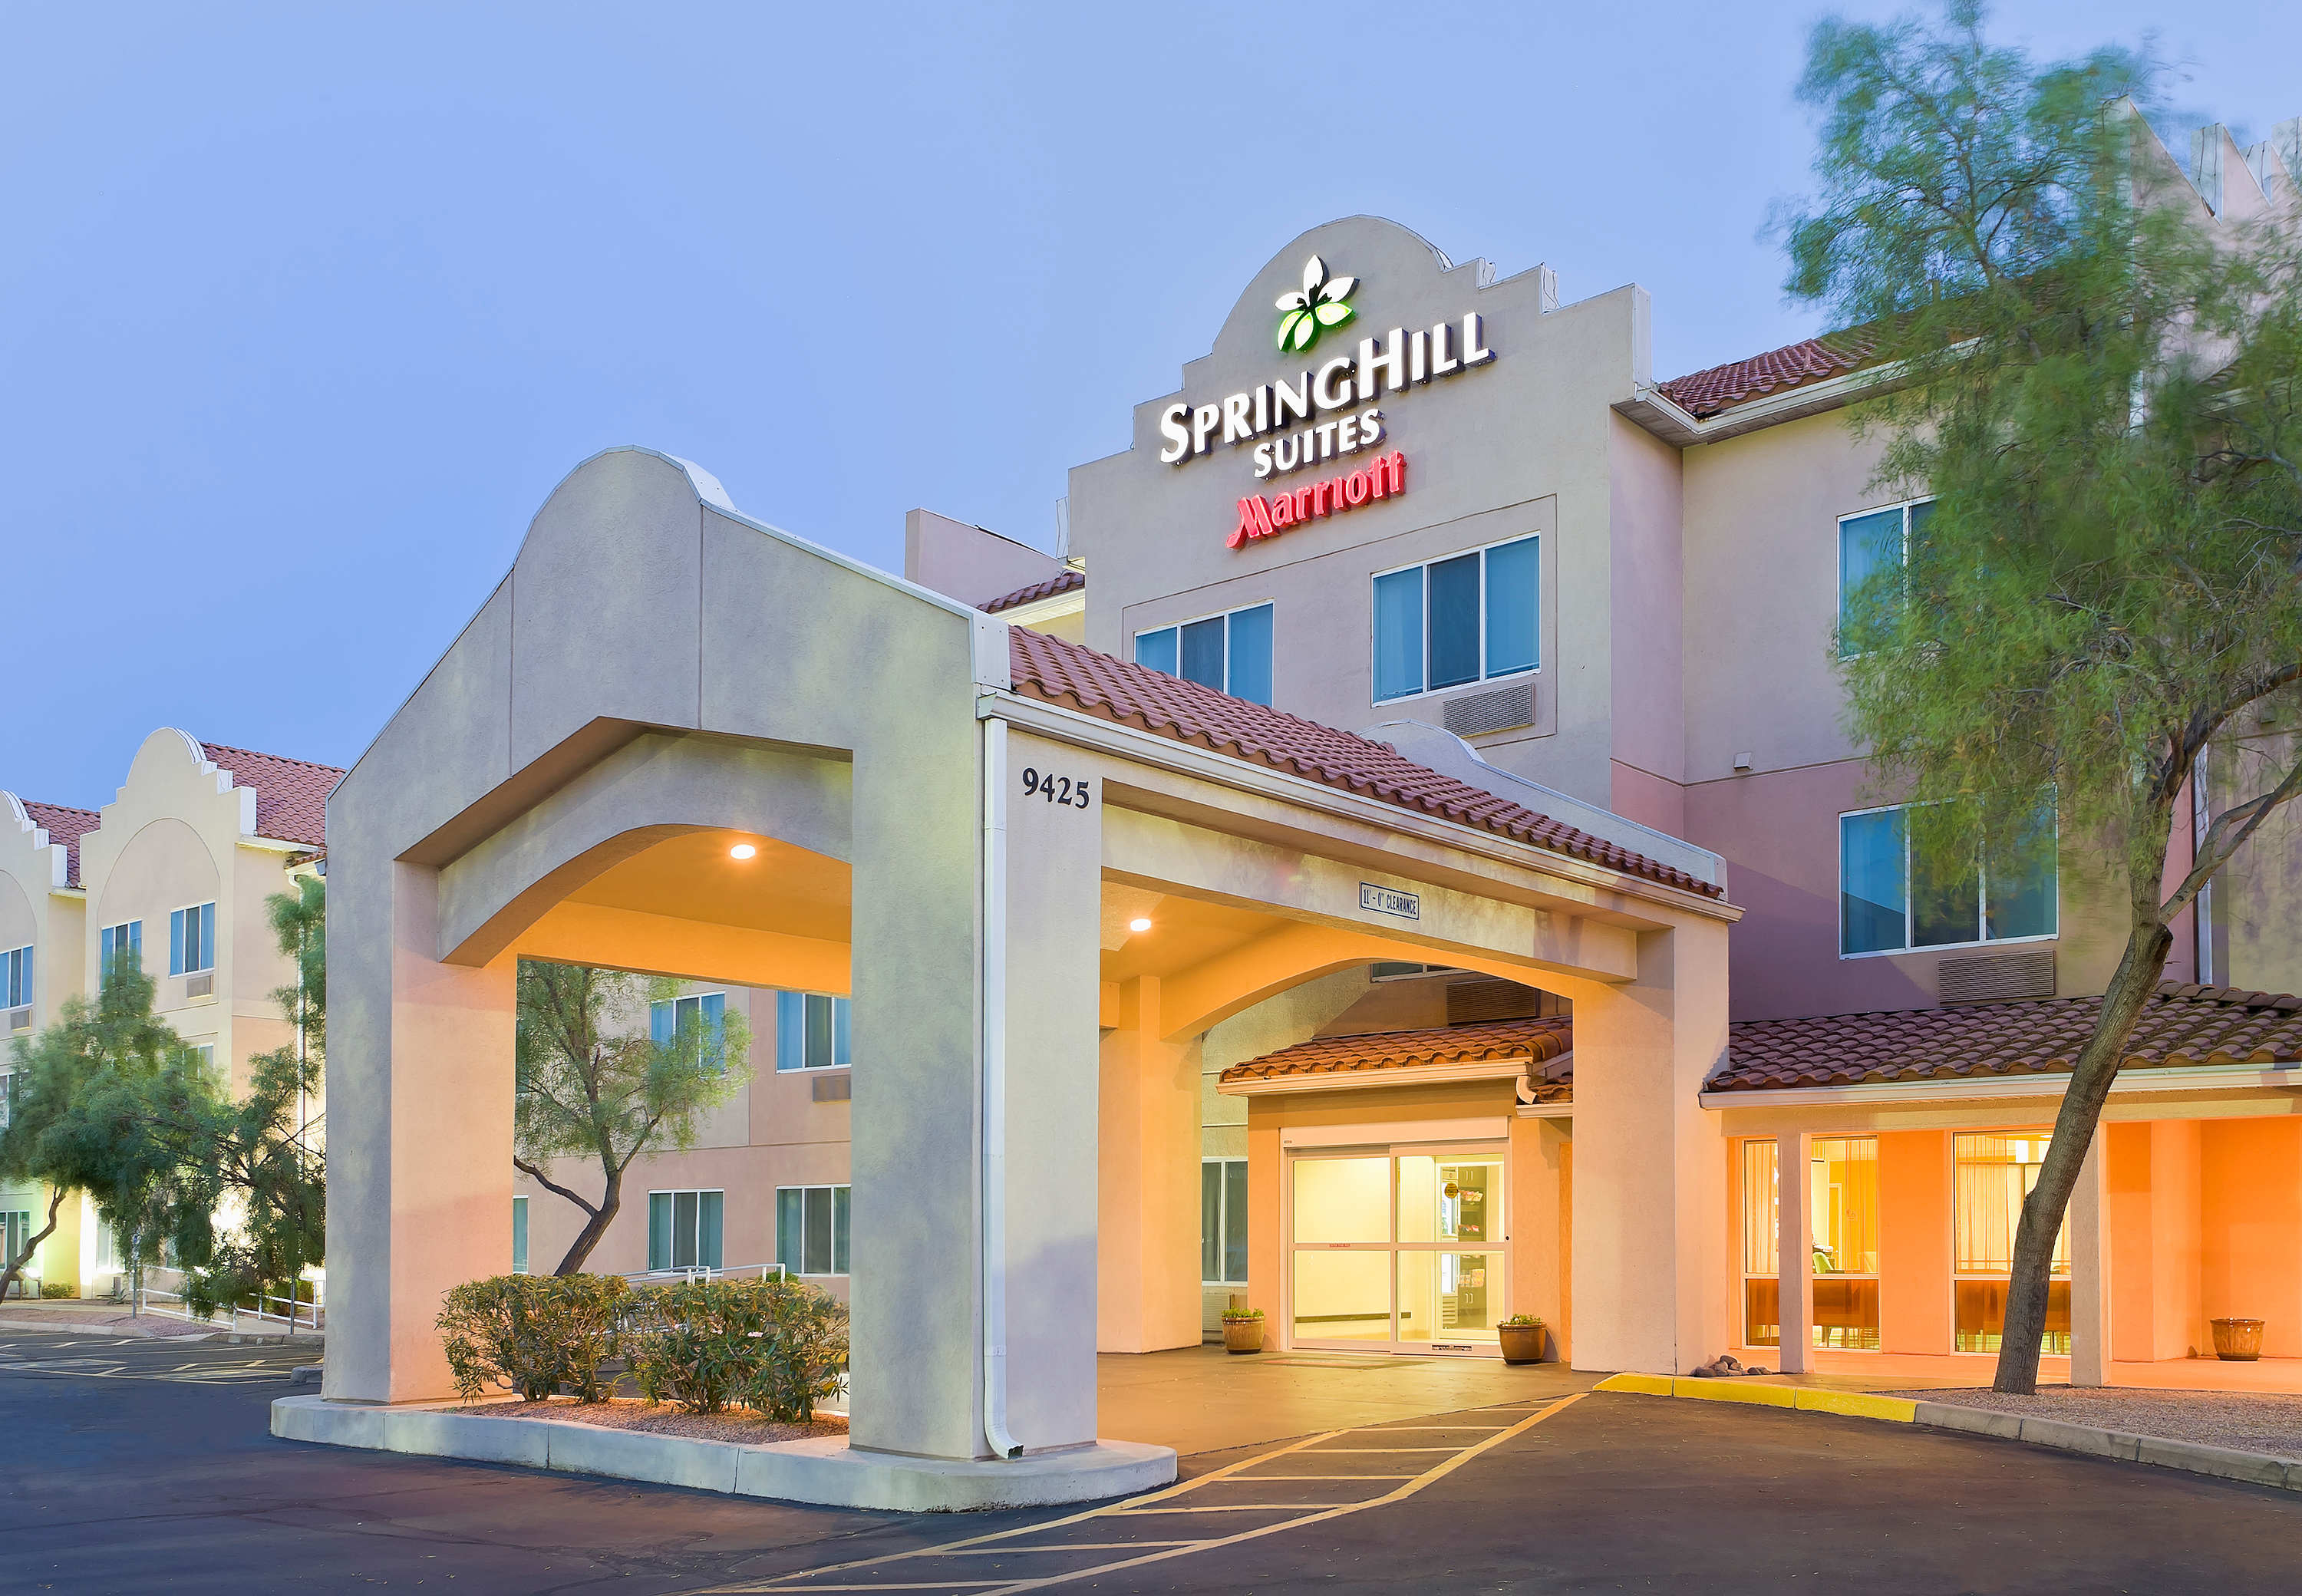 SpringHill Suites by Marriott Phoenix North image 11